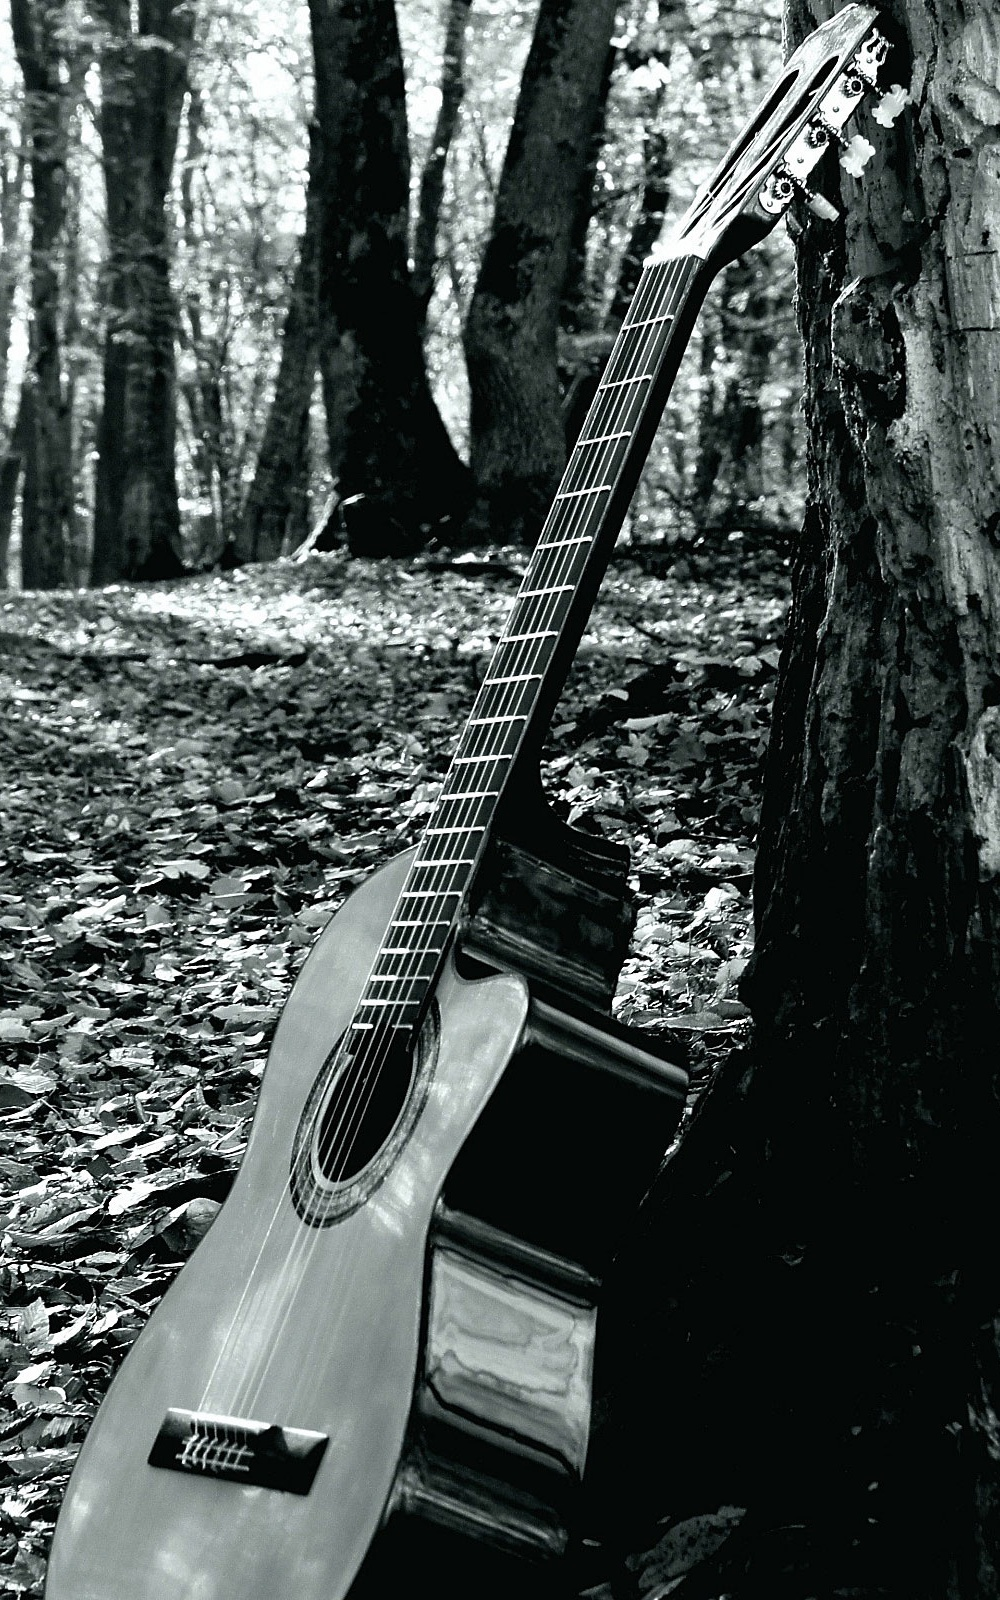 Forrest Guitar Mobile Wallpaper Mobiles Wall